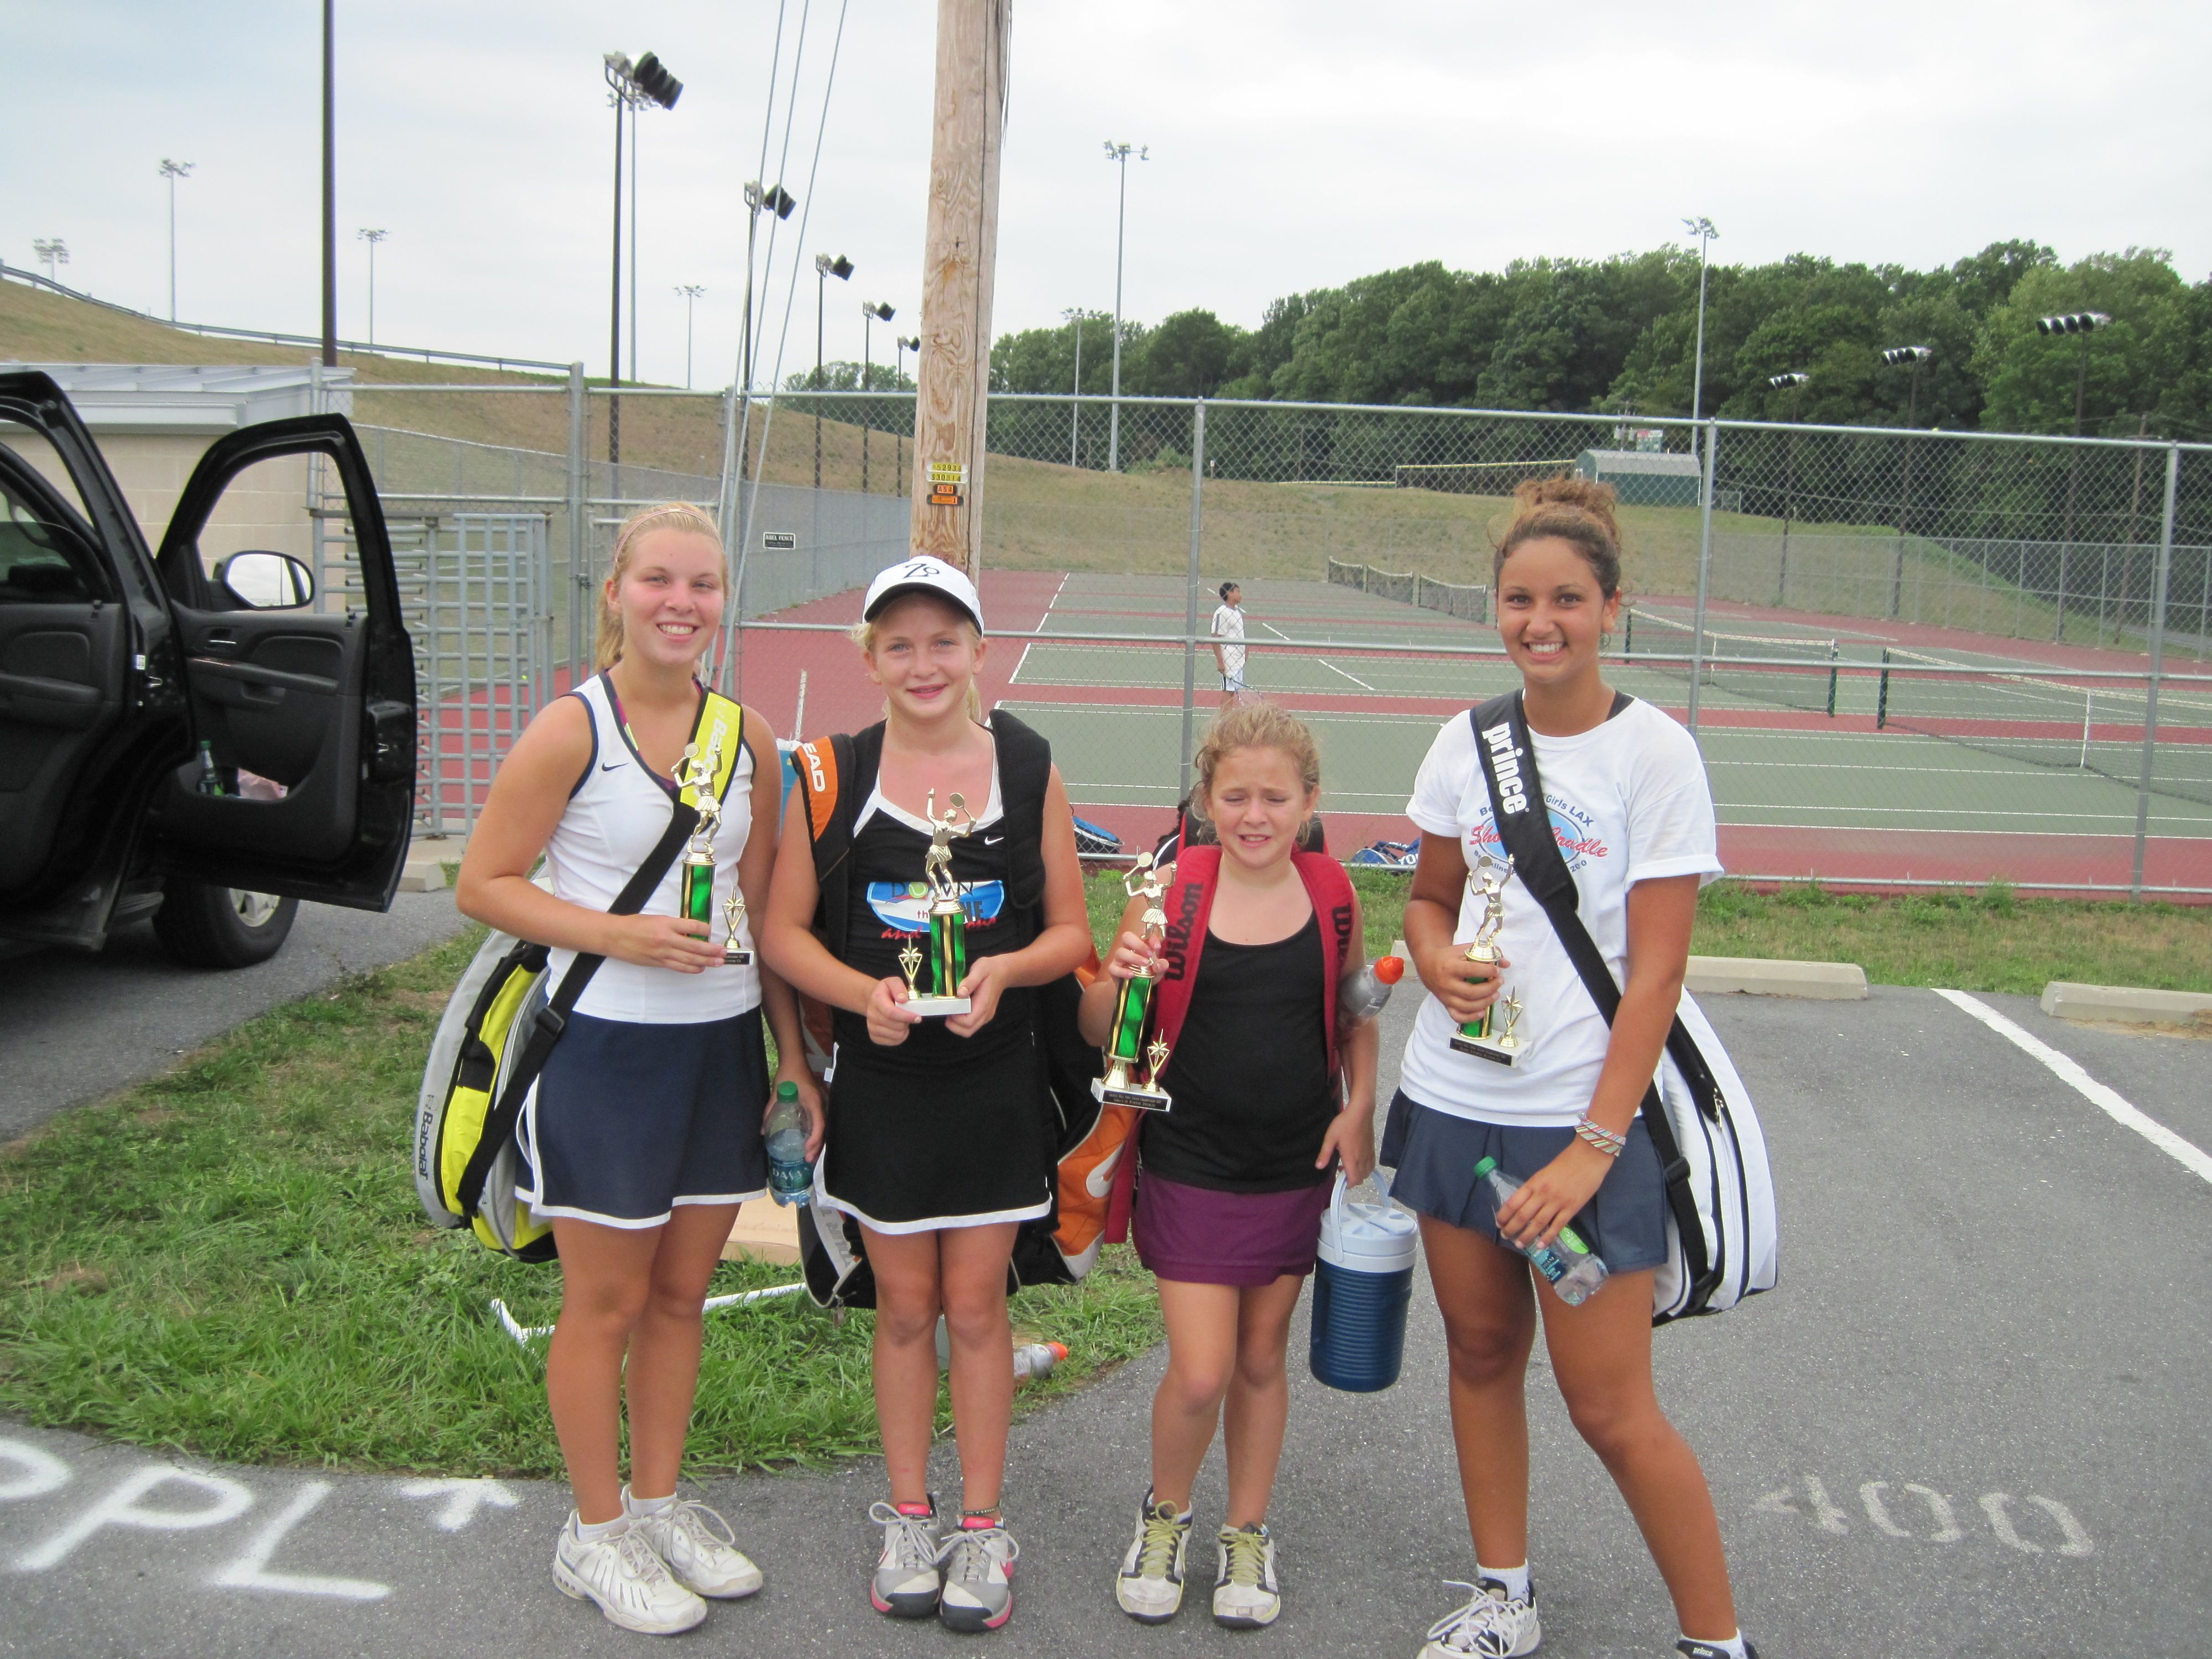 Set Point Tennis Open Girls Doubles Champion and Runnerup